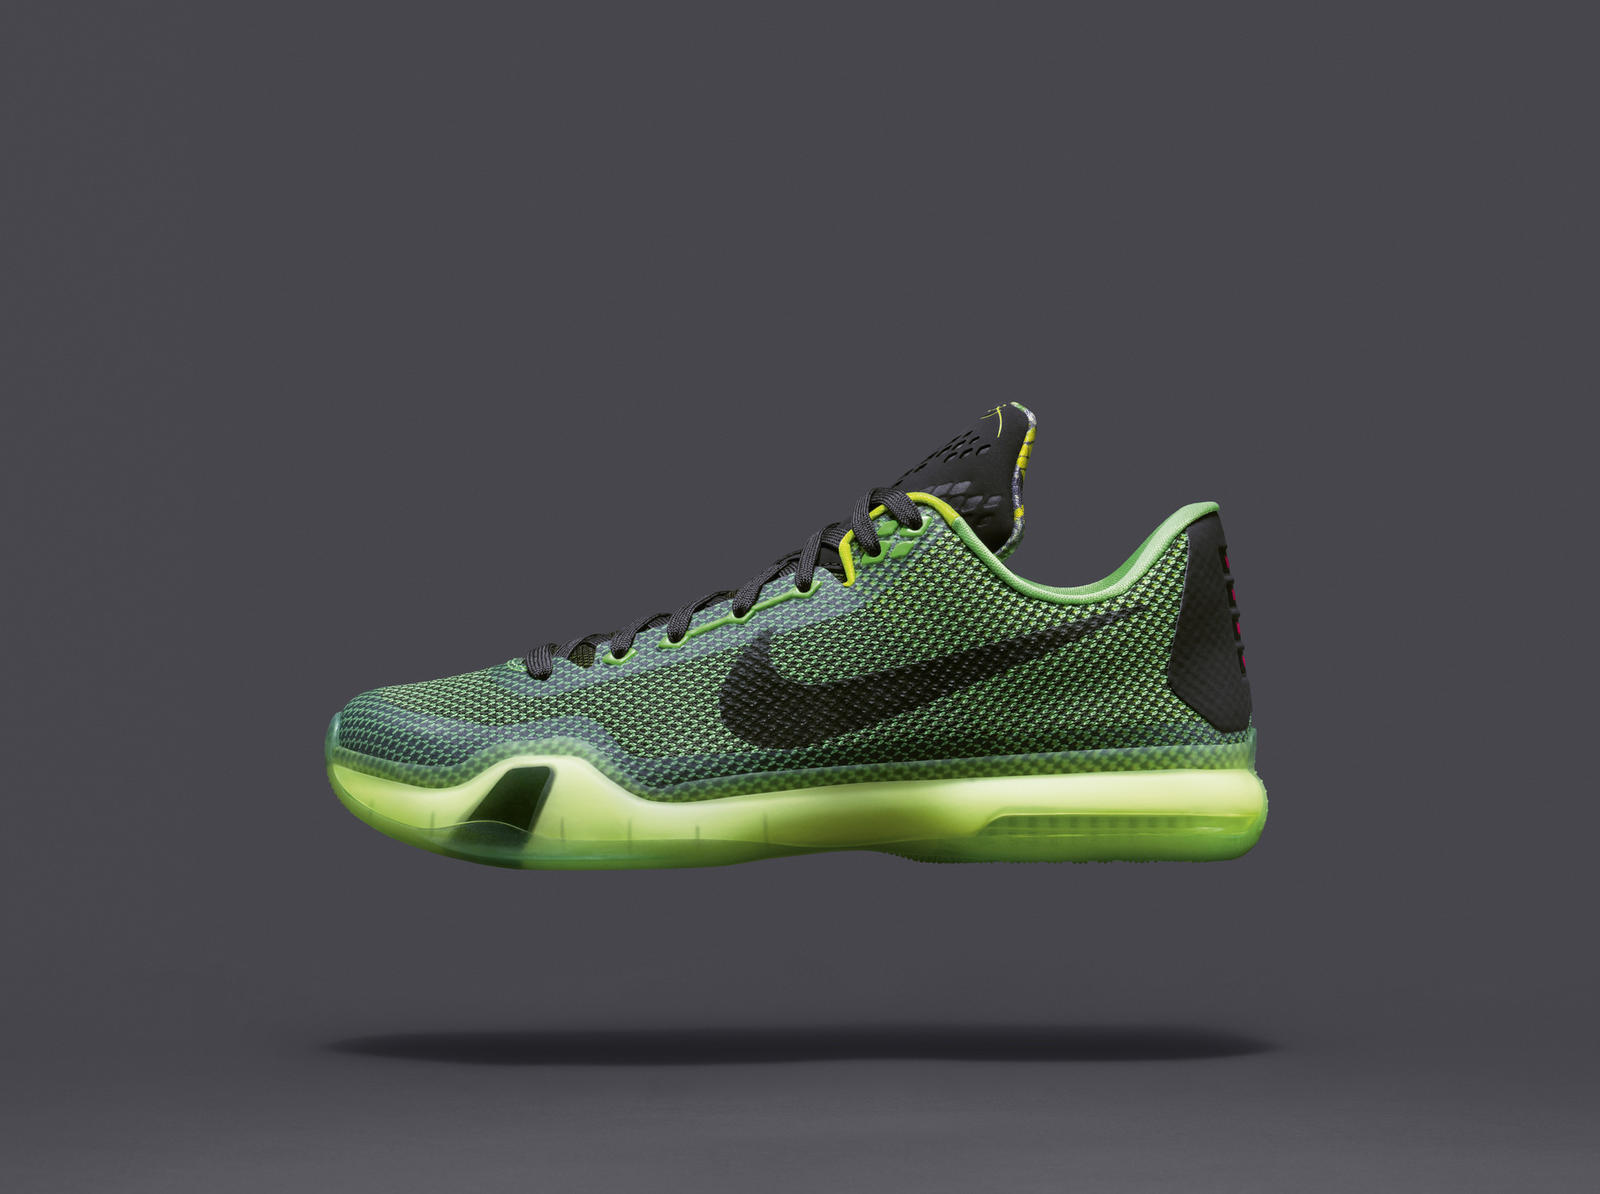 new styles 4e176 c61d7 KOBE X Vino Shoe Inspired by Off-Court Team Bonding - Nike News